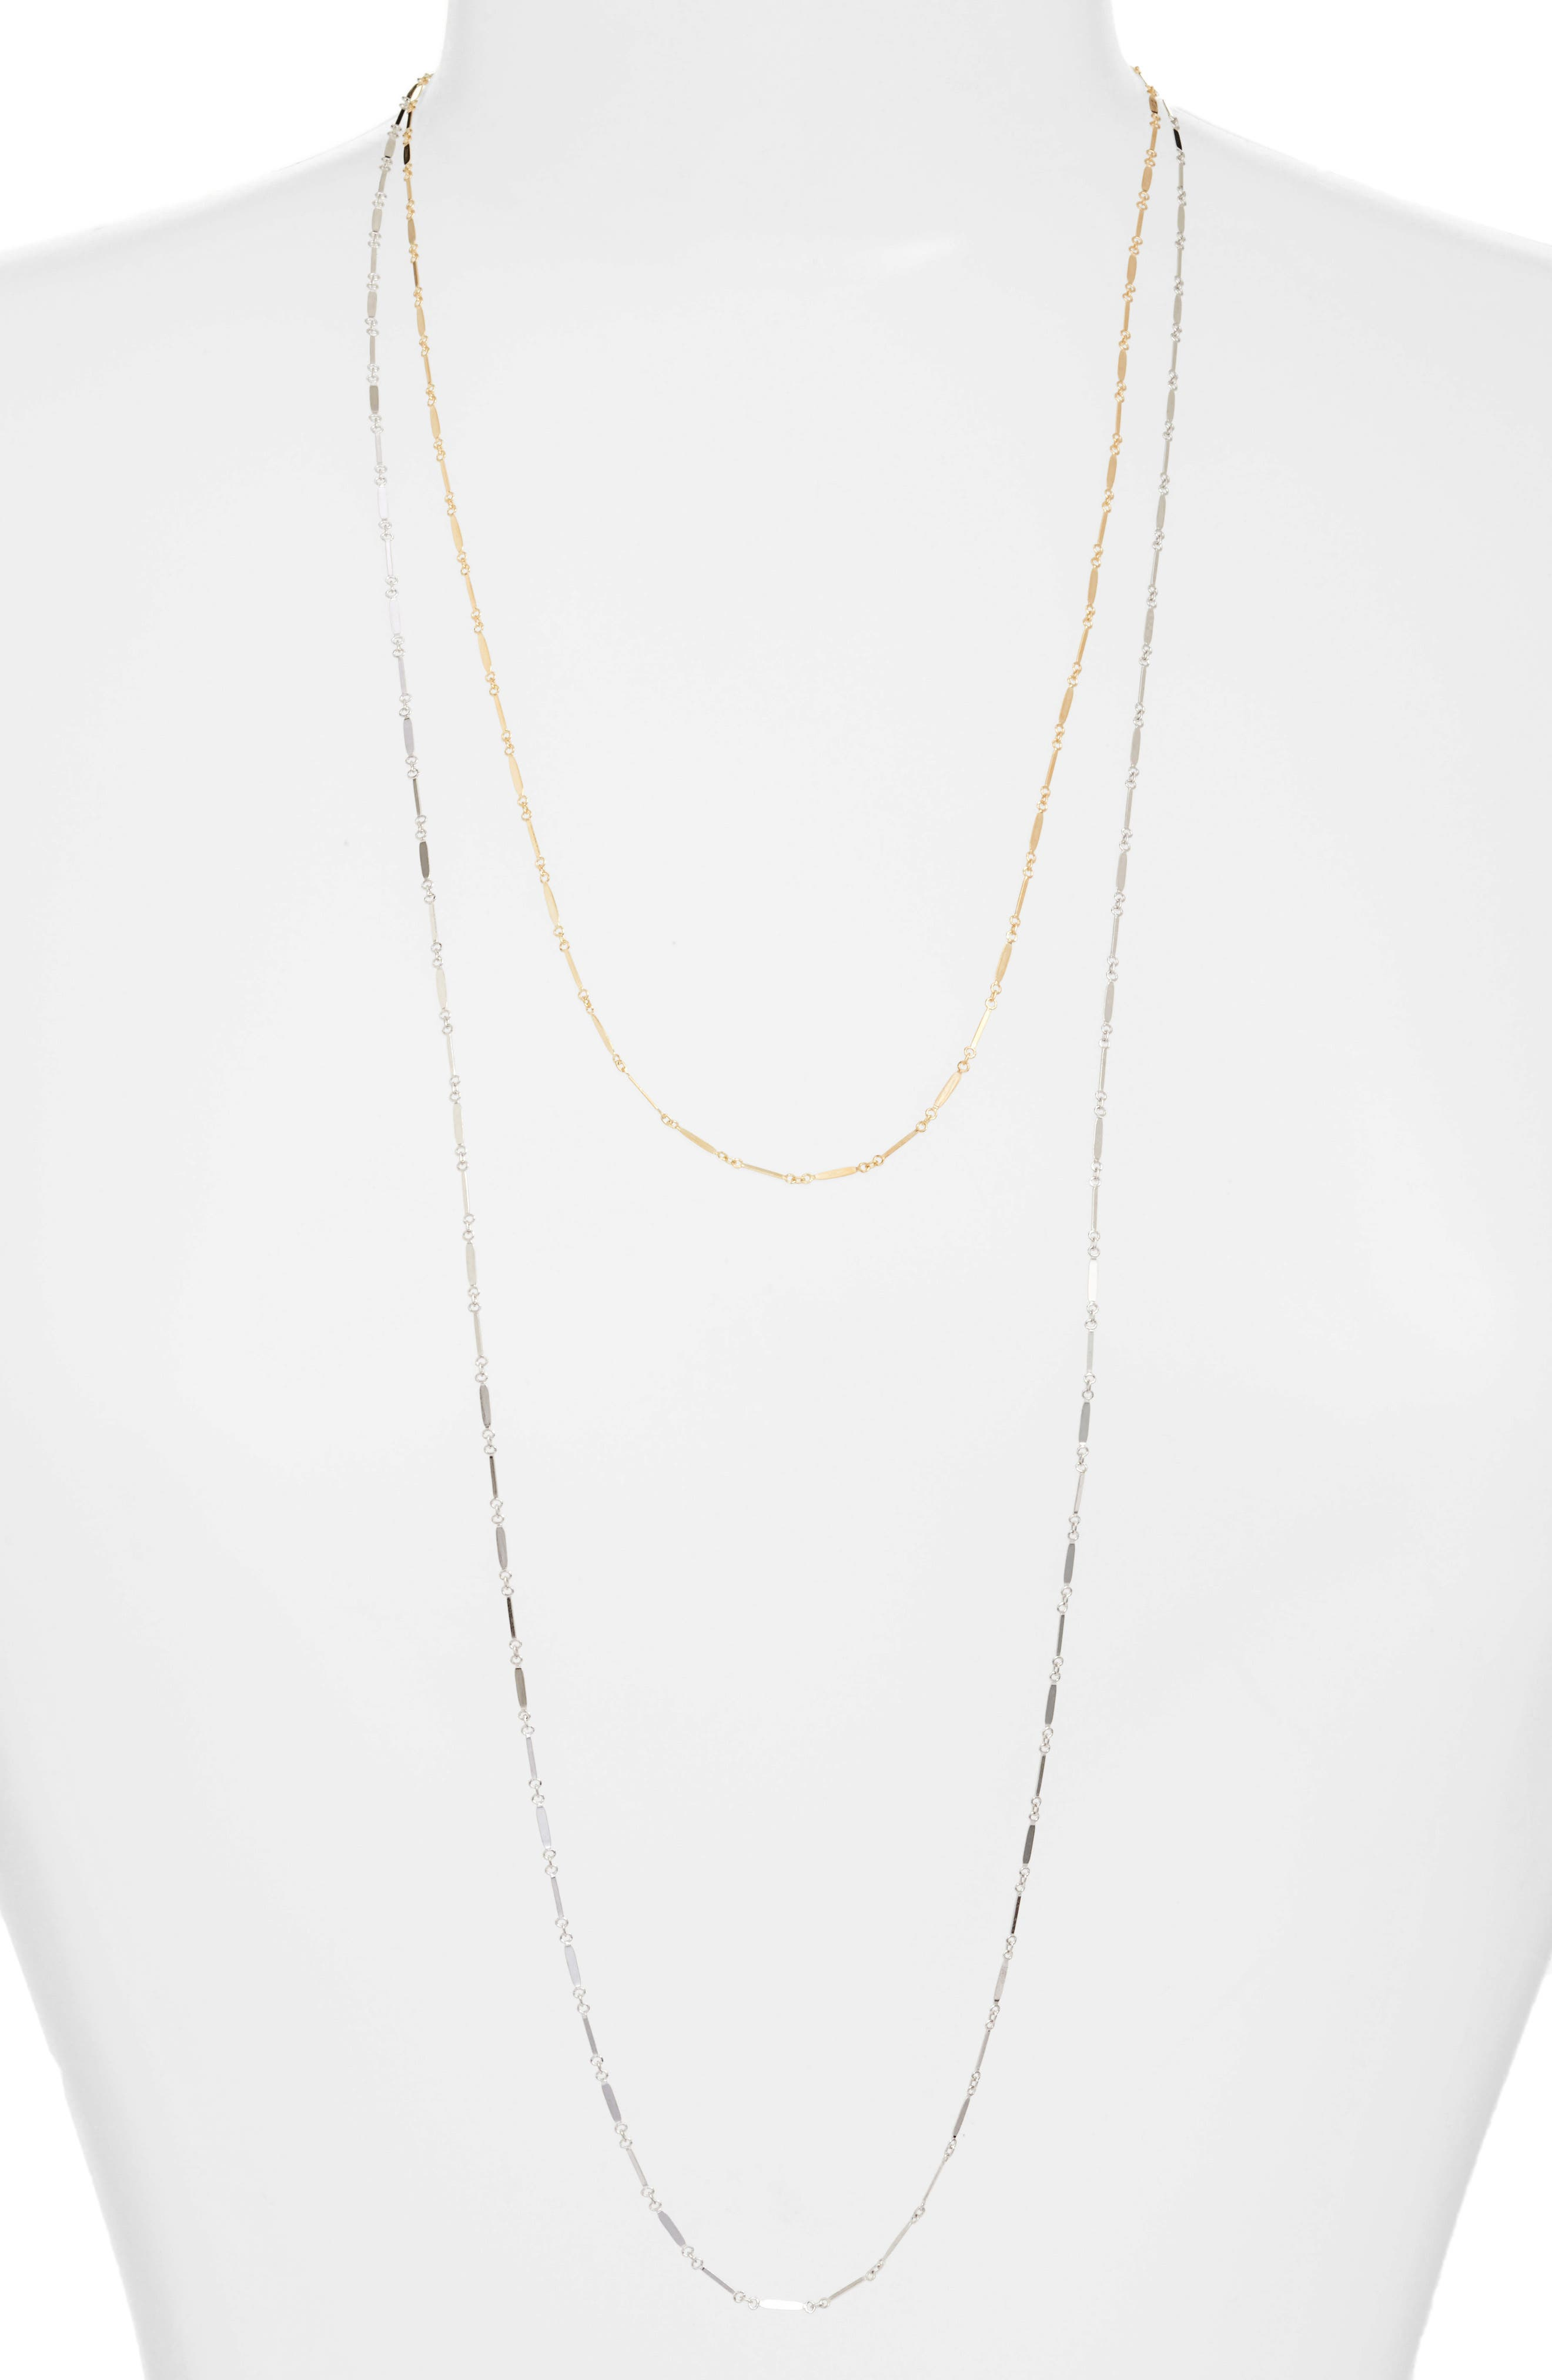 Alternate Image 1 Selected - Argento Vivo Two-Tone Mirror Multistrand Necklace